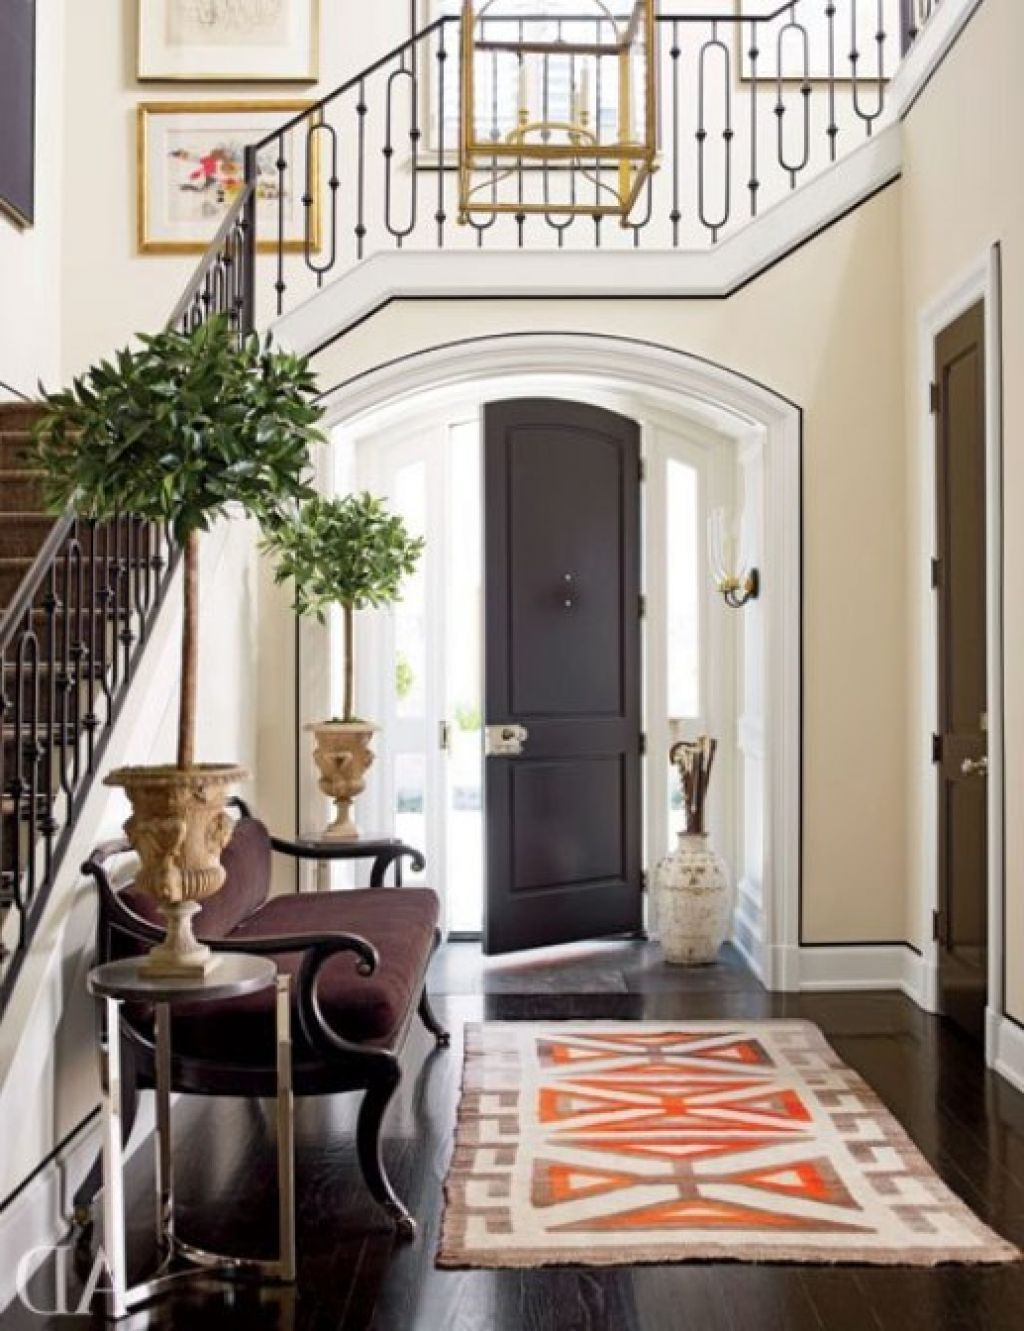 Decorating, Modern Traditional Simple Small Symmetry Entrance Hallway To Living Room Decorating